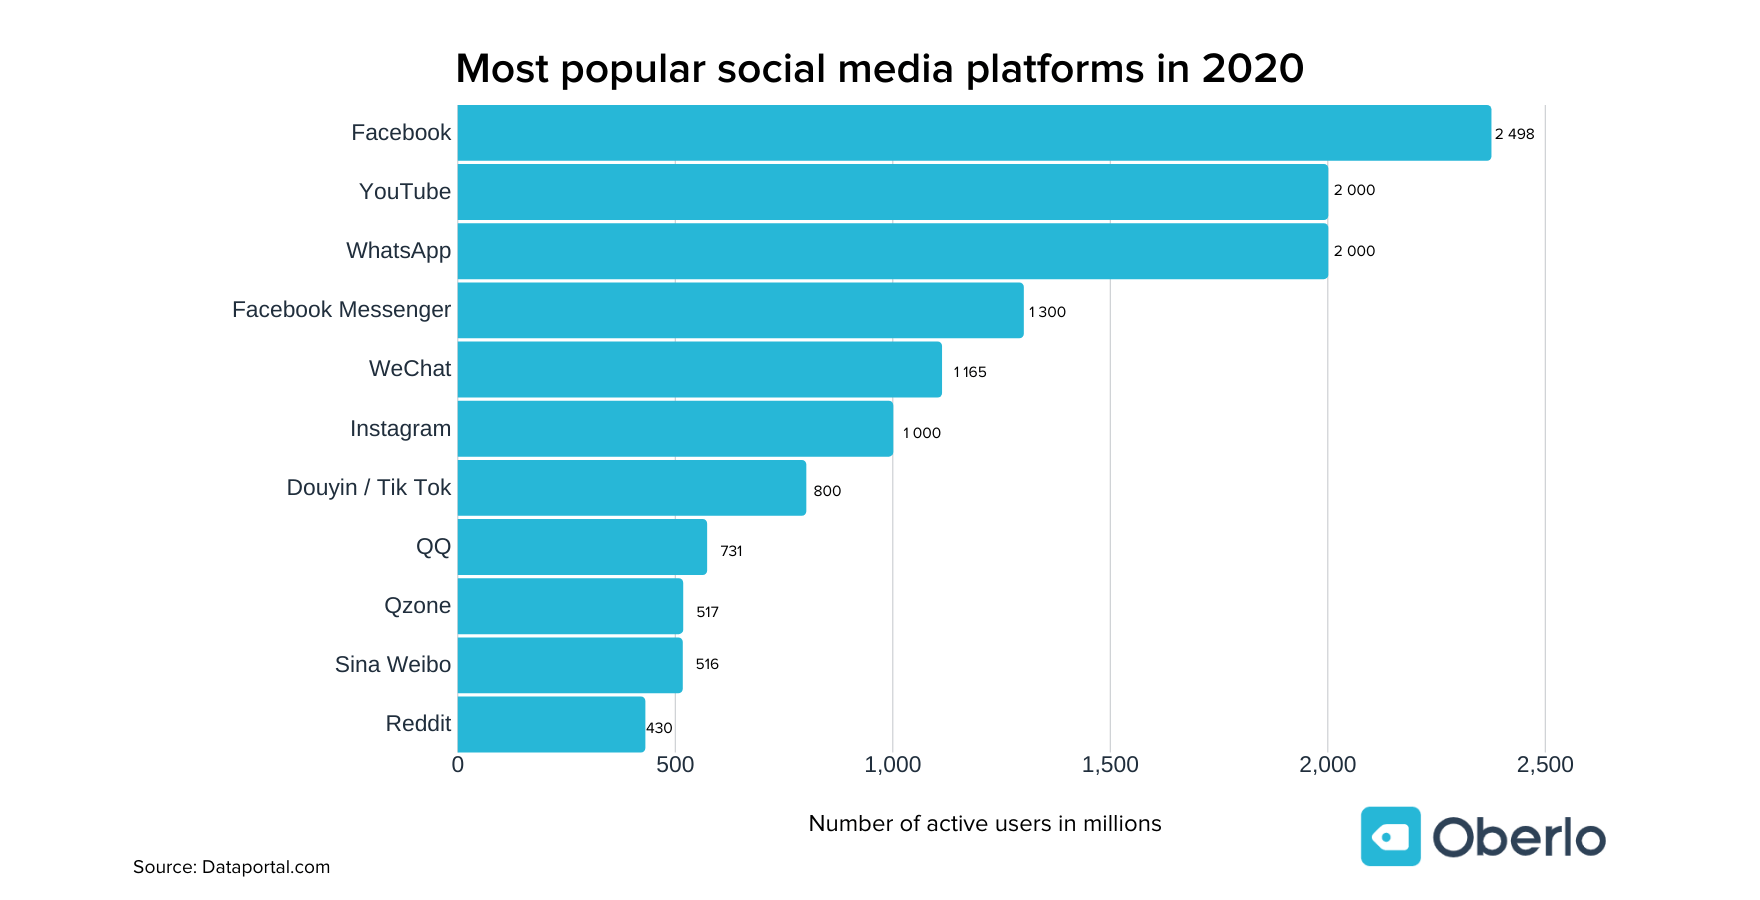 Most Popular Social Media Platforms in 2020 chart